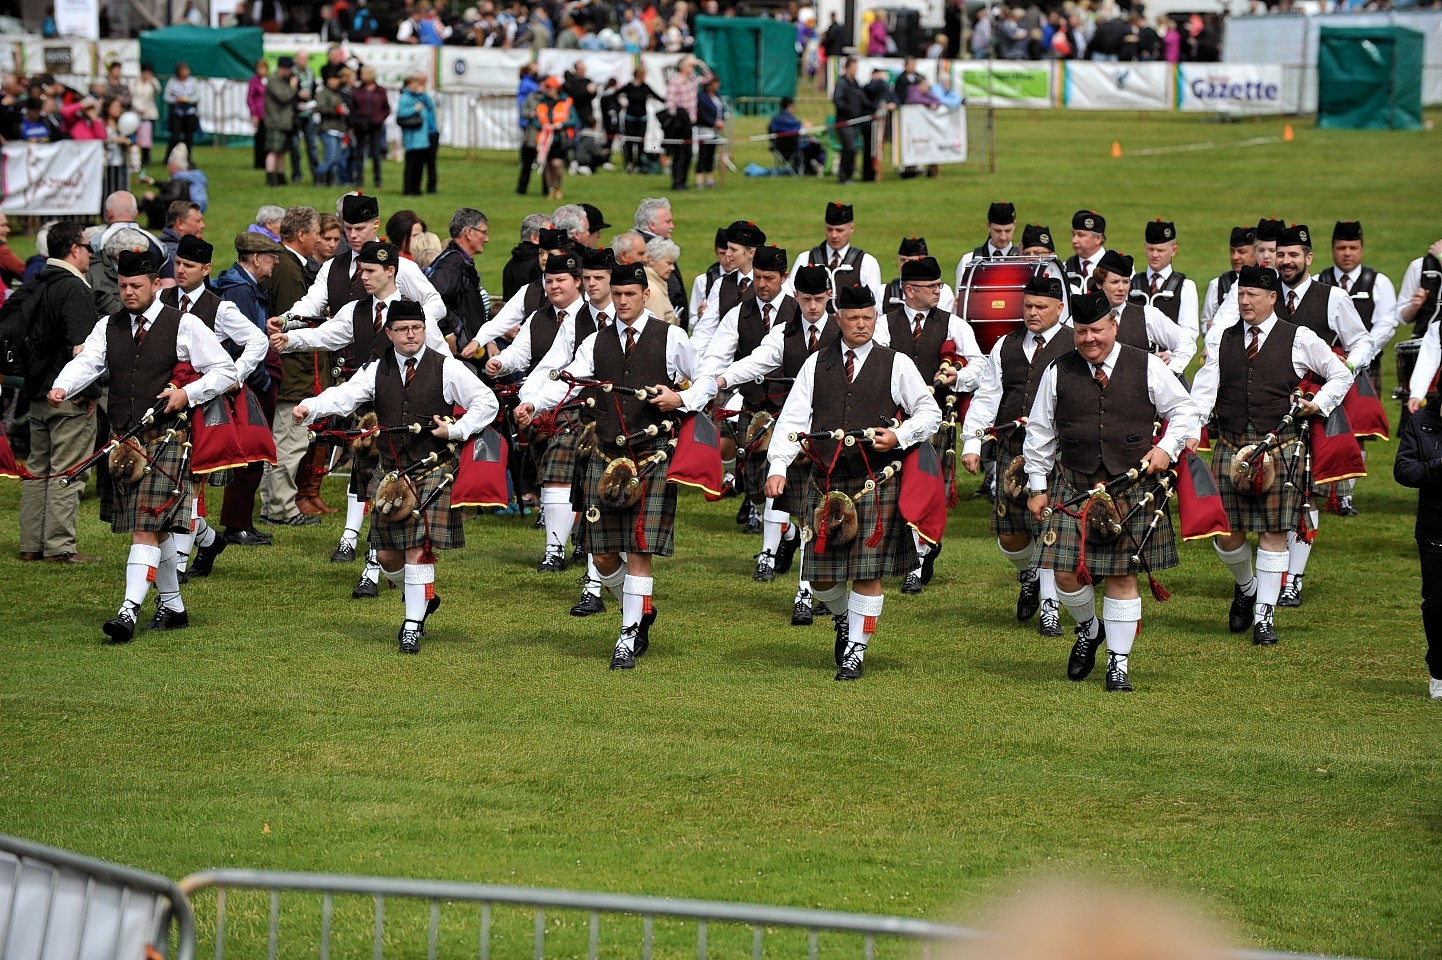 Piping Hot Forres - Pipe Band Championships at Grant Park, Forres.